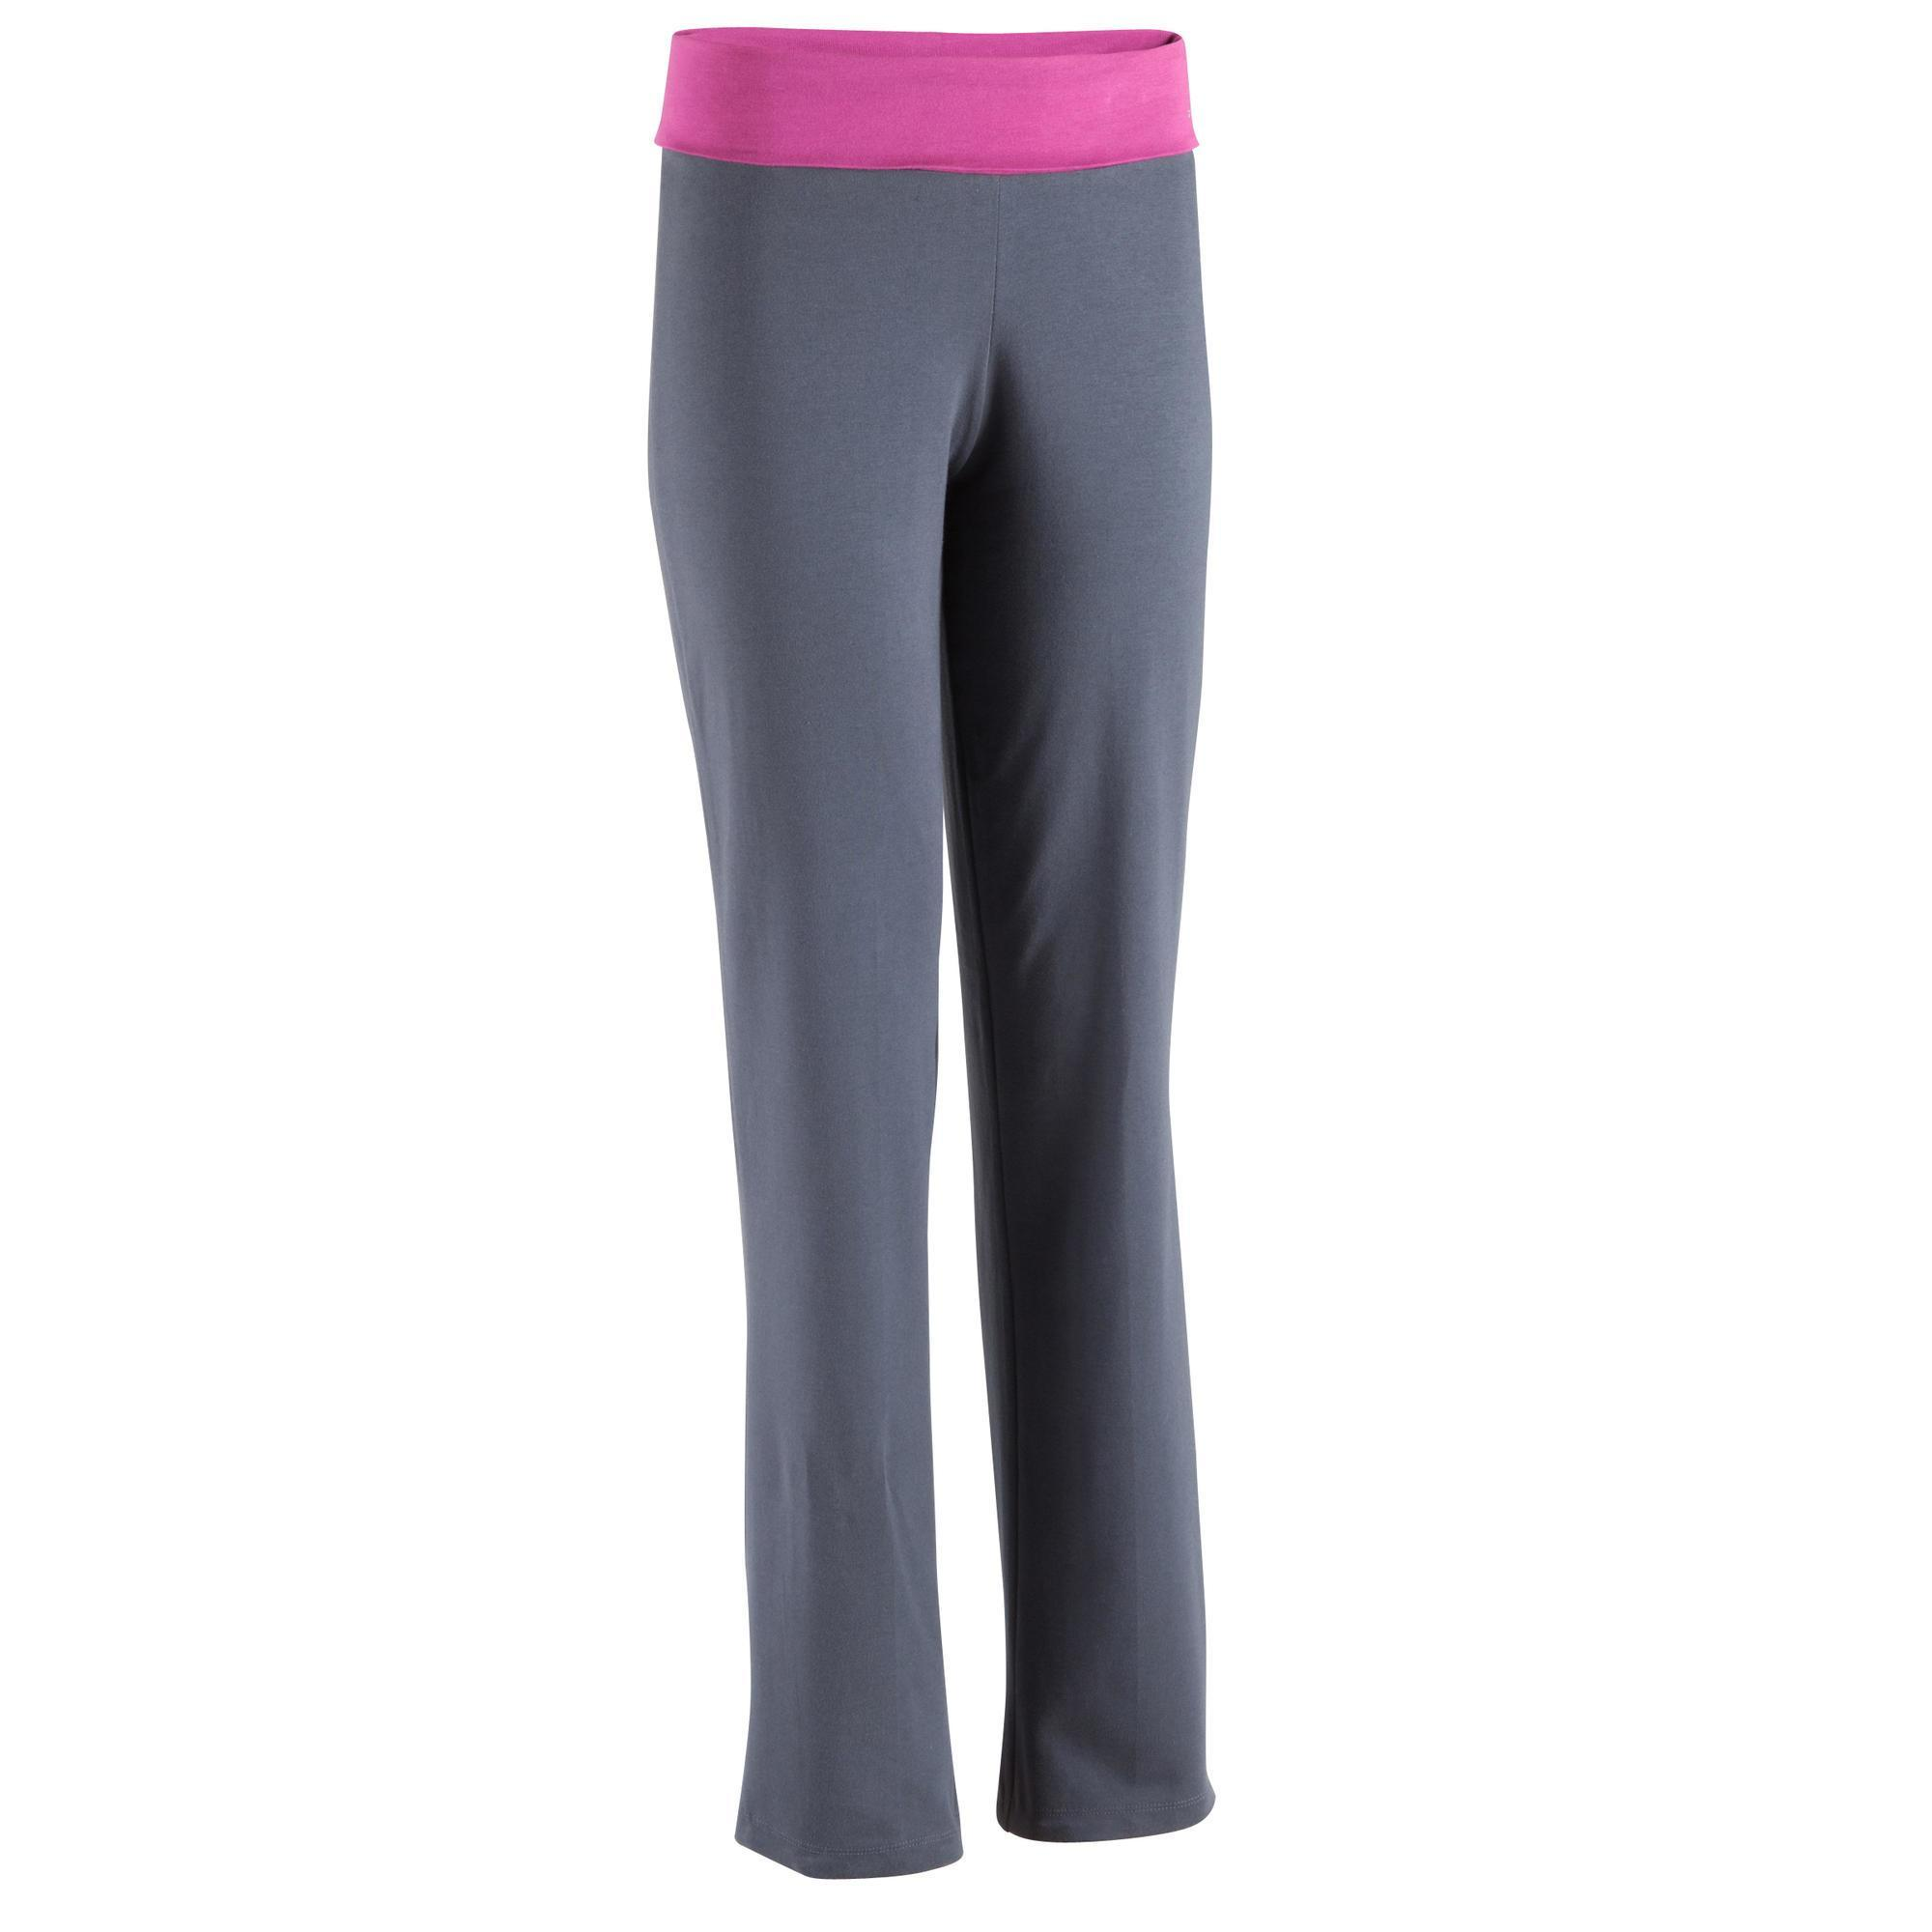 pantalon yoga en coton issu de l 39 agriculture biologique femme gris fonc domyos by decathlon. Black Bedroom Furniture Sets. Home Design Ideas